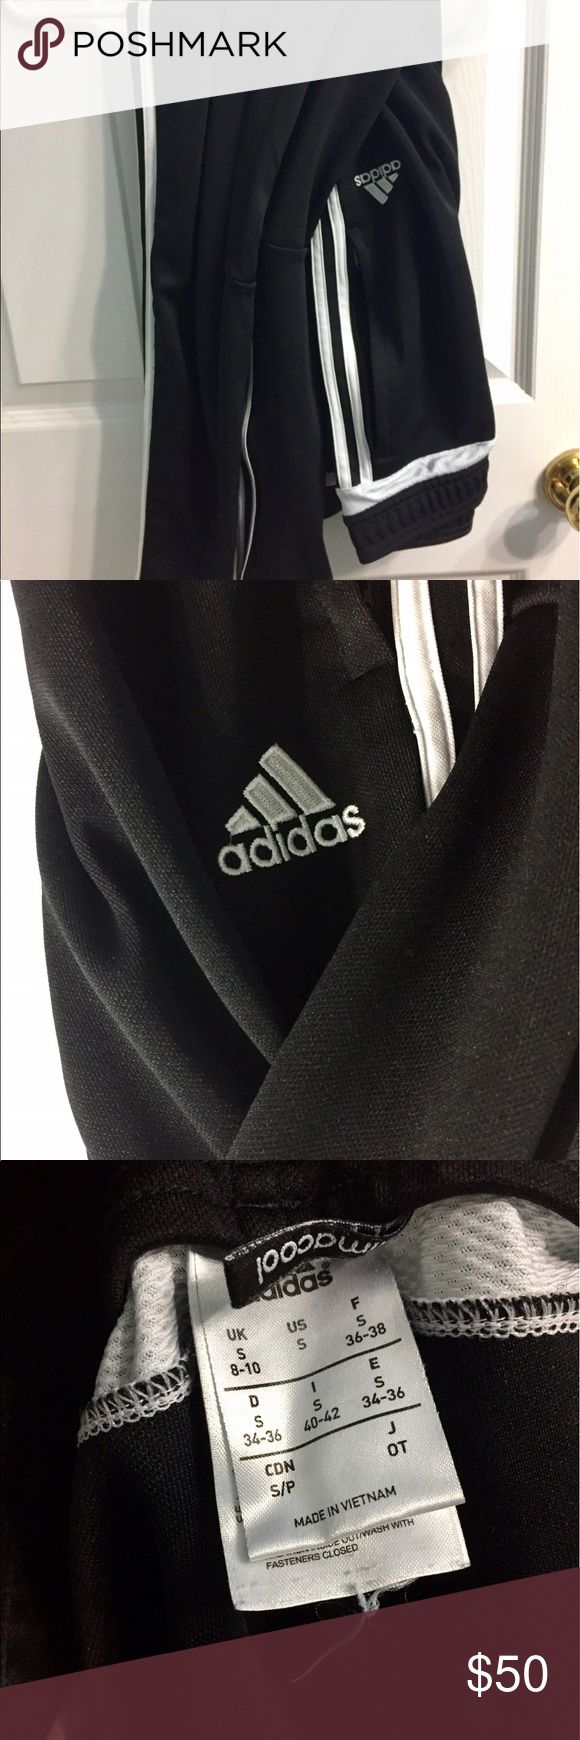 Adidas Slim Fit Jogger Pants Stylish jogger pants from Adidas, in great condition after only a few wears.  Perfect for after gym workouts!  Open to offers. adidas Pants Track Pants & Joggers